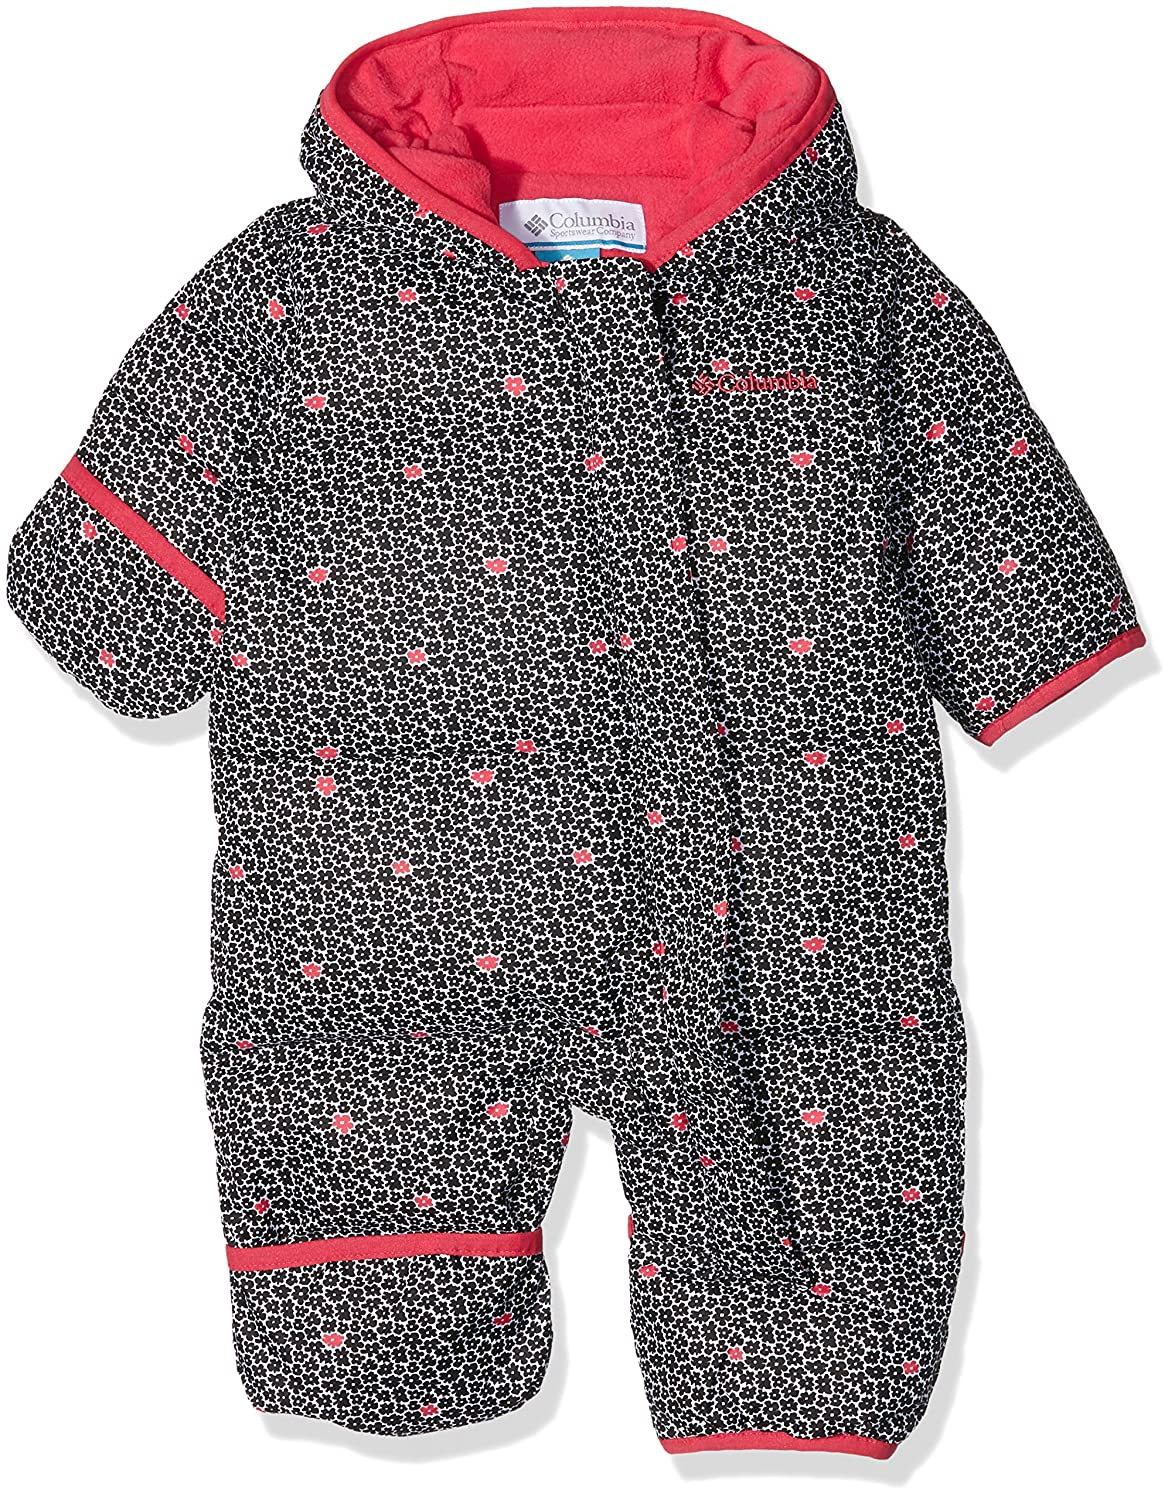 ee991a76227f Columbia Kid s Snuggly Bunny Suit - Black Floral